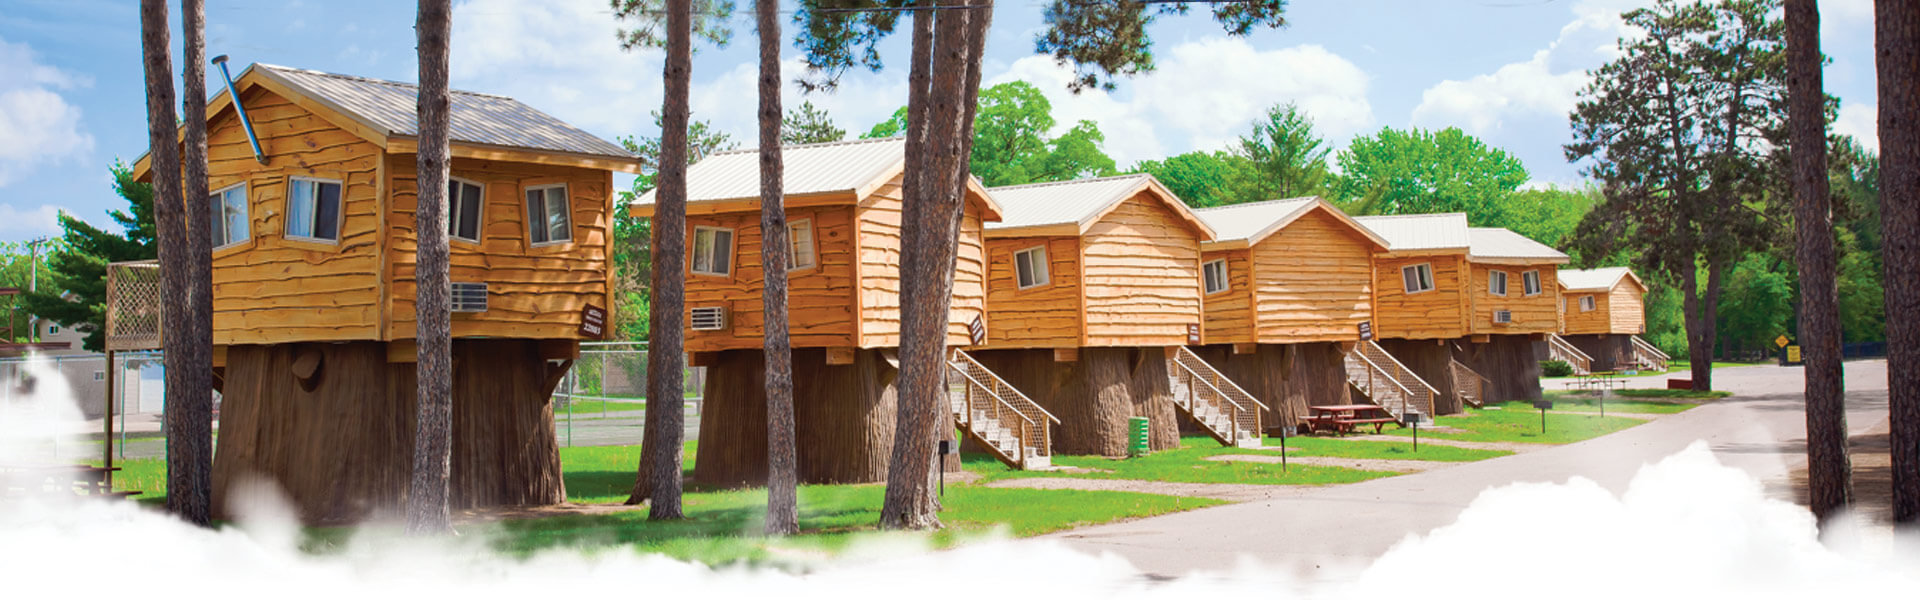 beach relax den s luxury the deal minutes conservation cabin home wisconsin cozy bed image to from ultimate area dells kayak property yards cabins experience bears in ha river